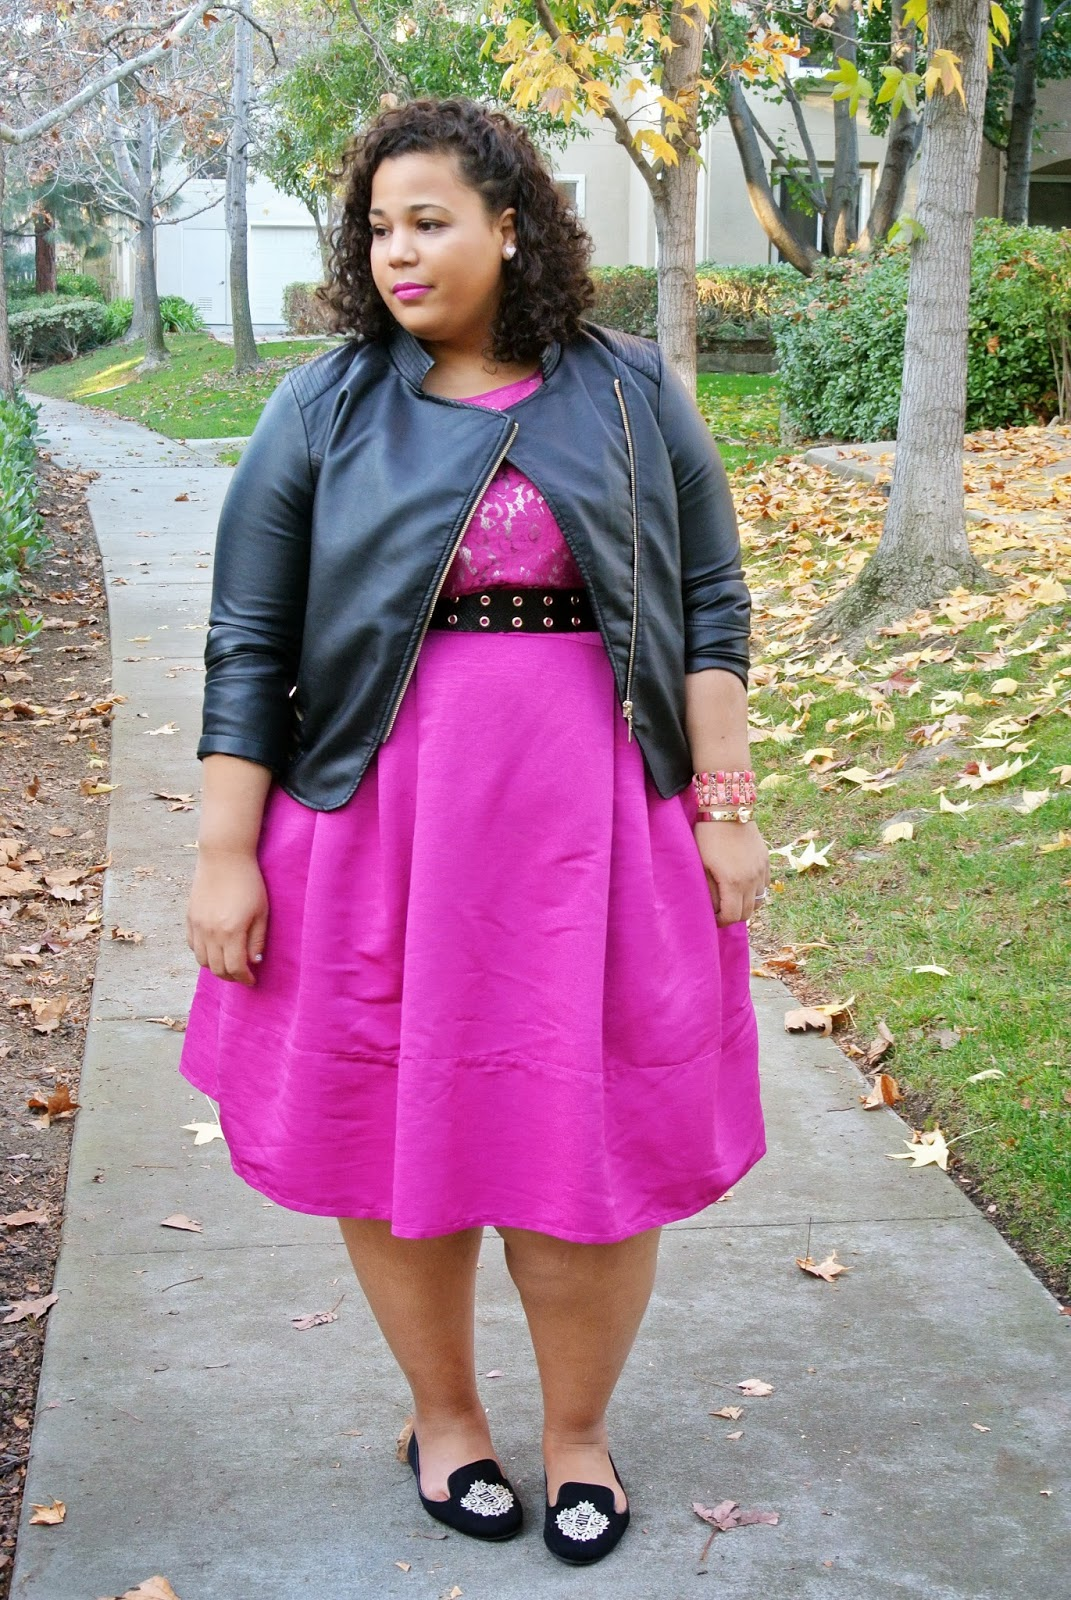 Pantene Pro-V Truly Natural, Plus size pink dress, moto jacket